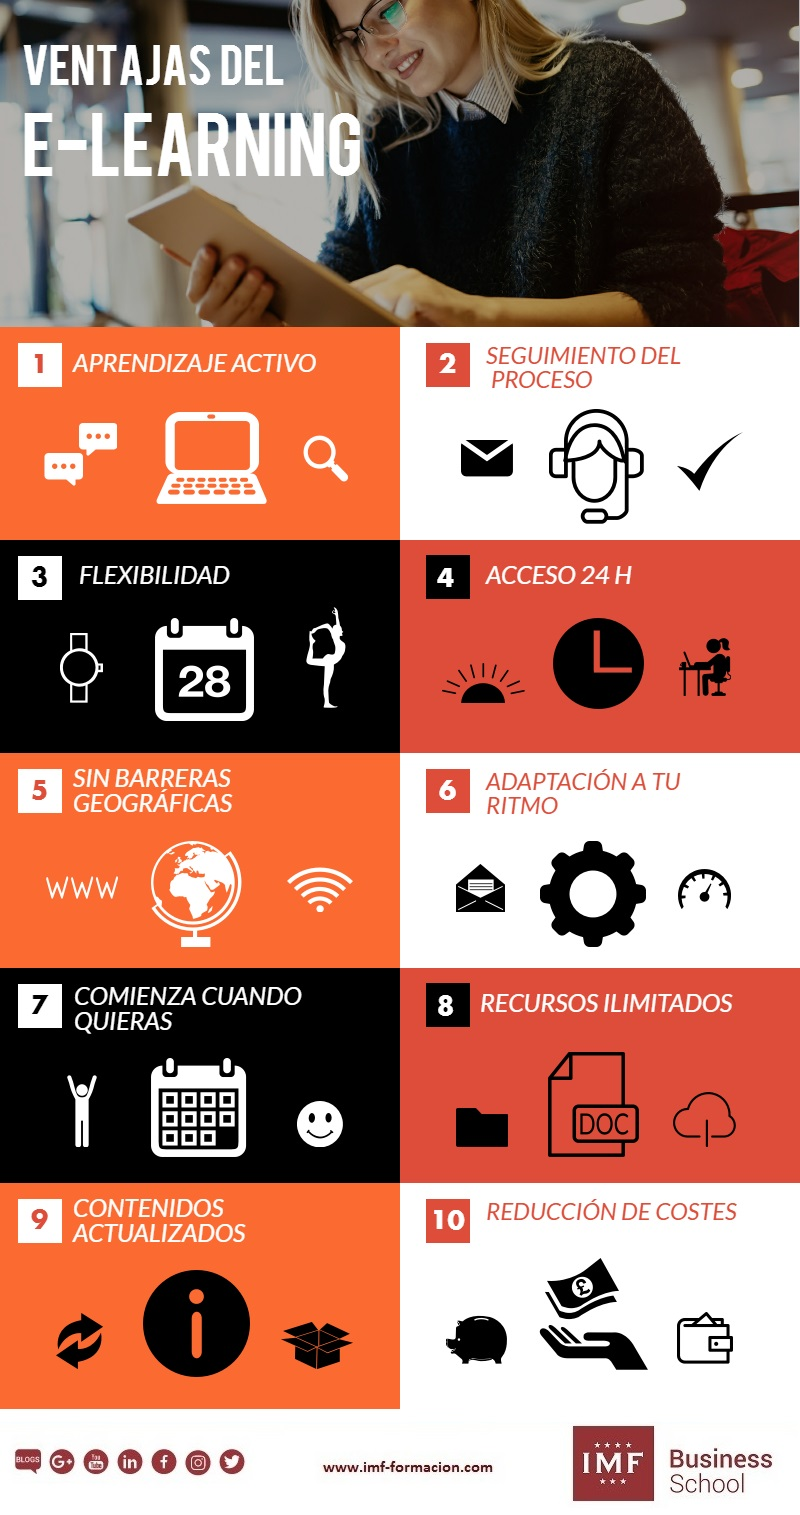 10 ventajas del e-learning